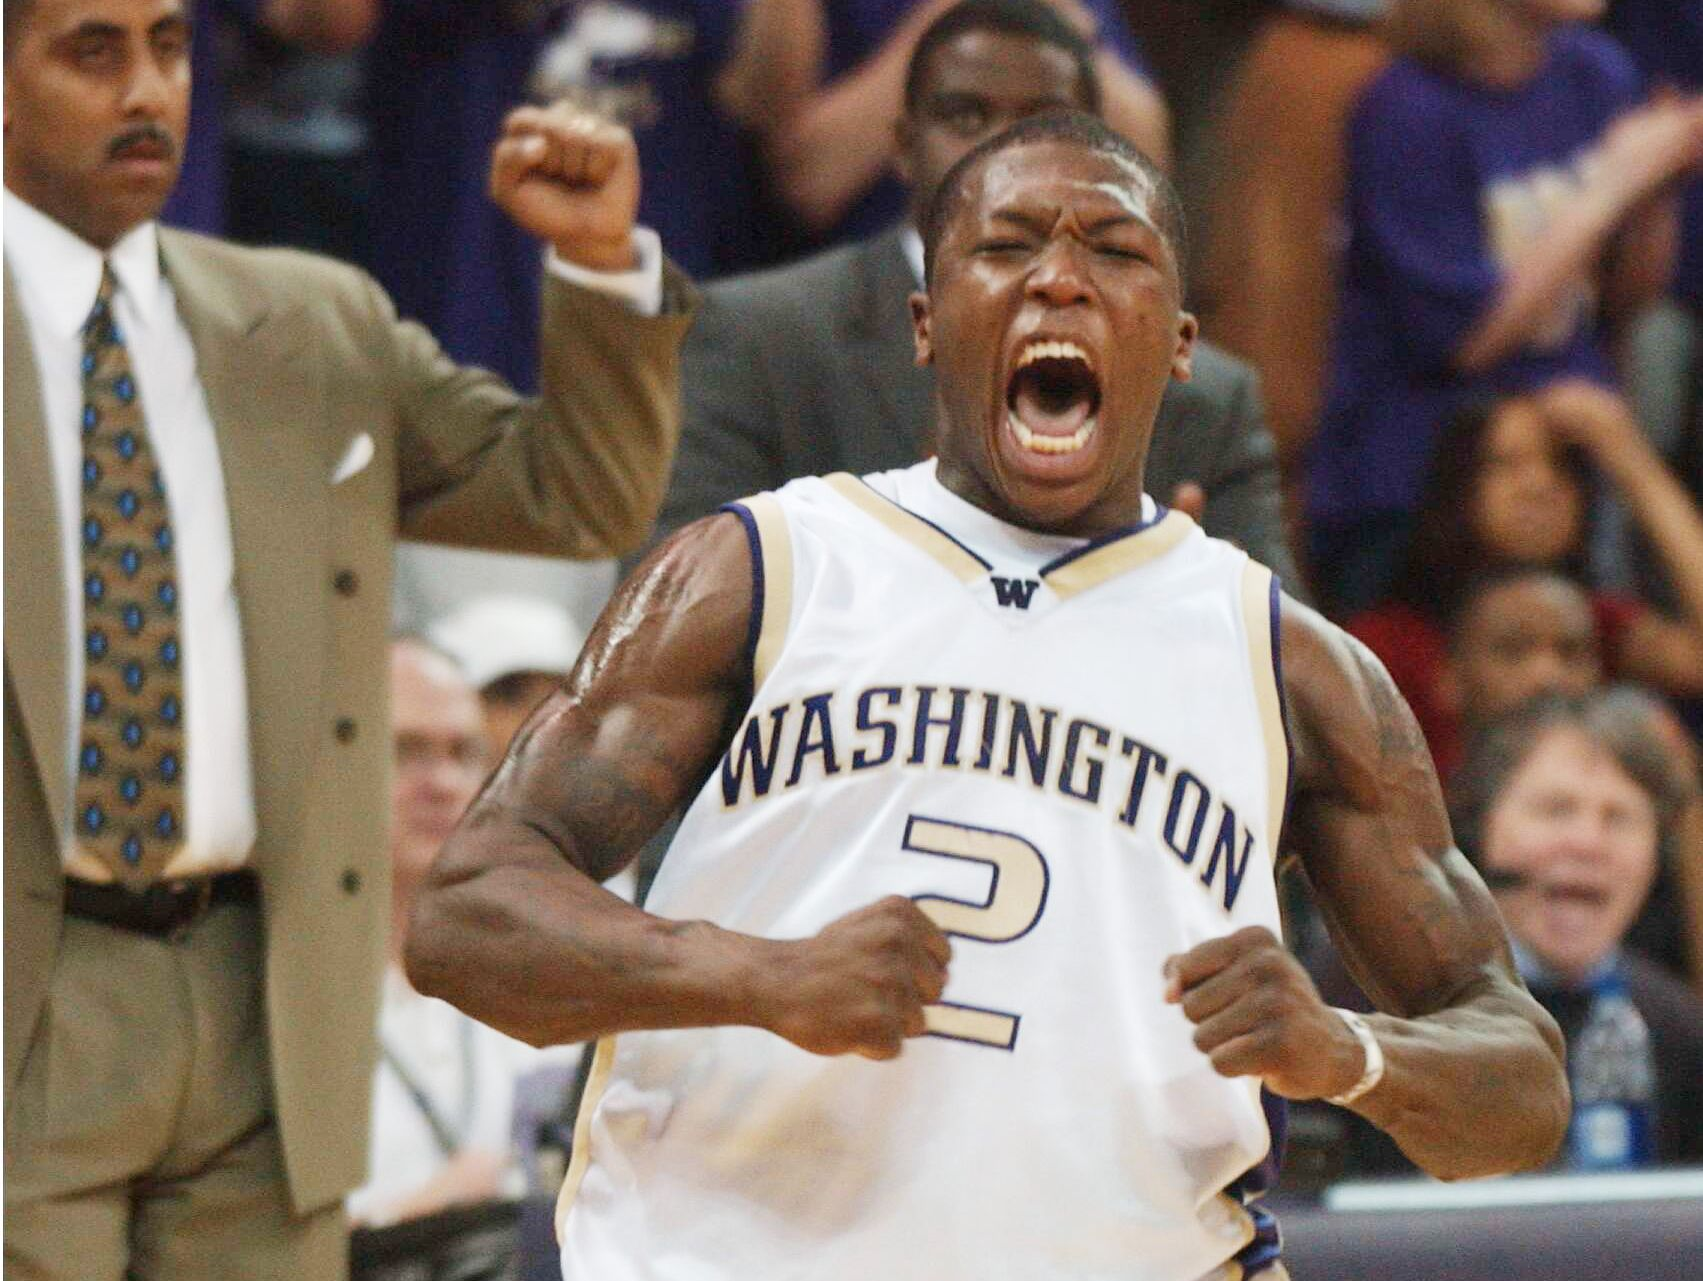 Nate Robinson of the Washington Huskies celebrates near the end of the game against the Oregon Ducks on February 22, 2003 at Bank of America Arena in Seattle Washington. The Huskies beat the Ducks 78-66.